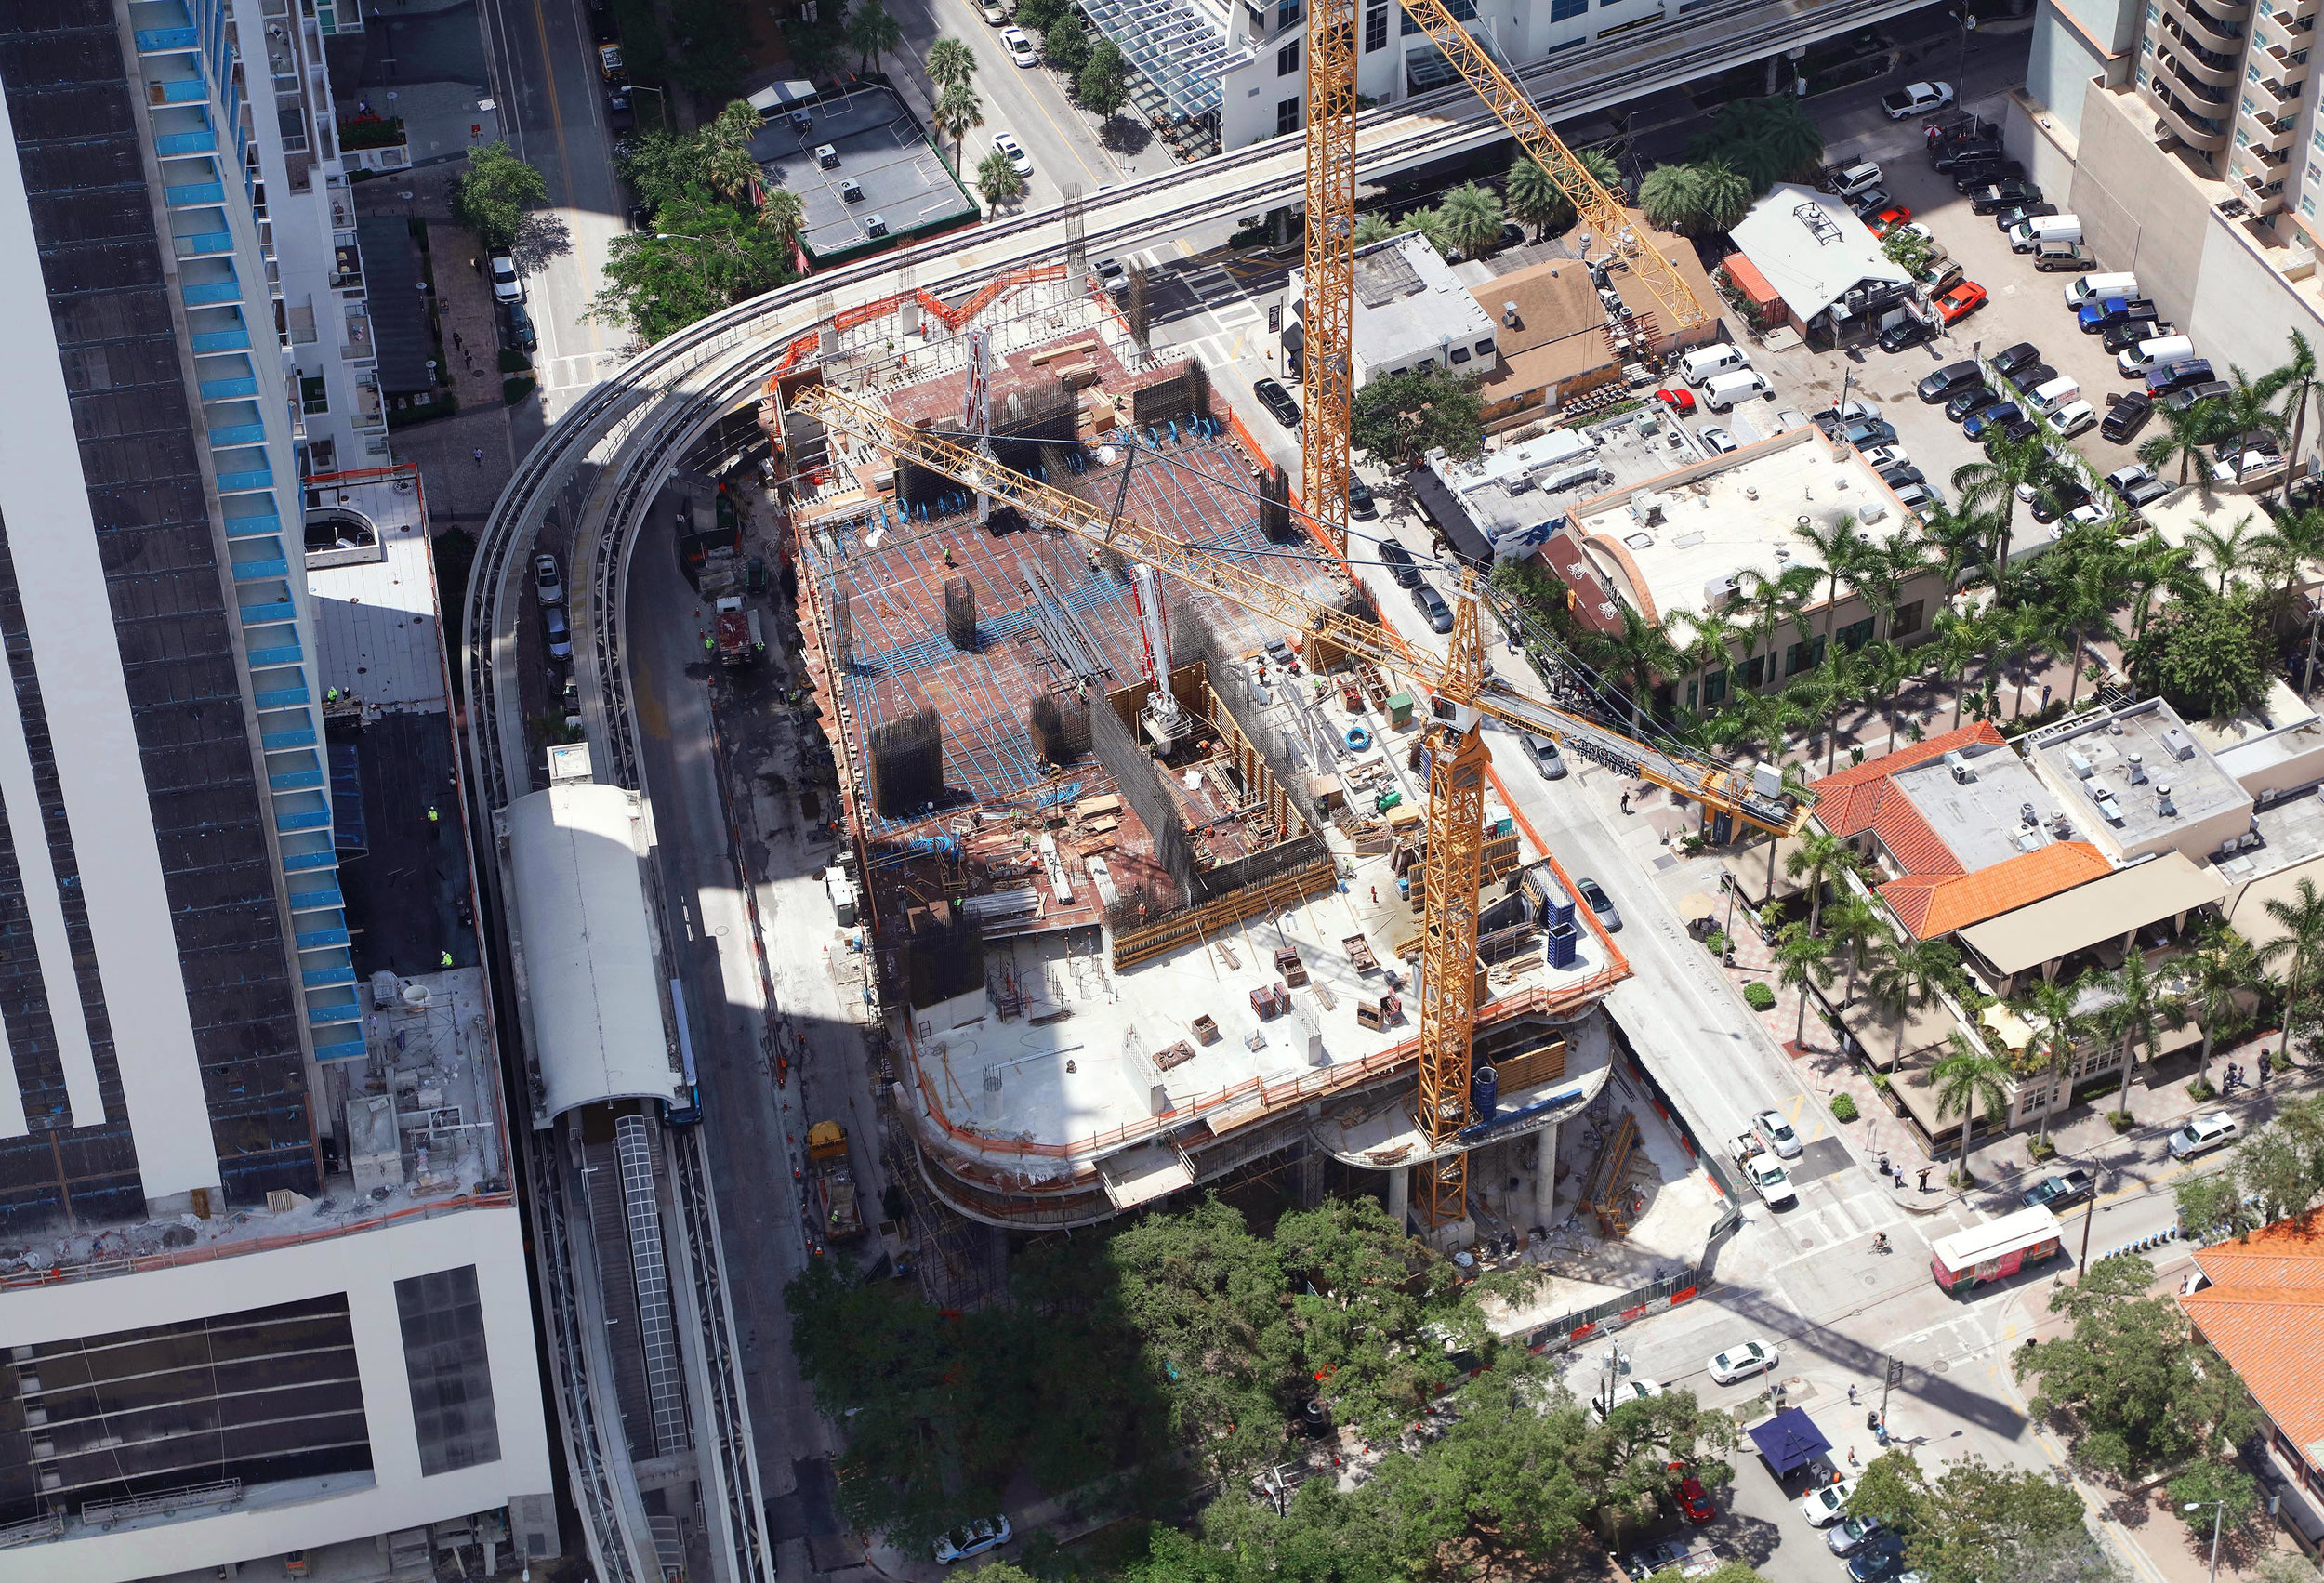 May 2, 2017 Construction Update: Brickell Flatiron Passes 6th Level, On Track for Top-Off in Late 2018 May 2, 2017